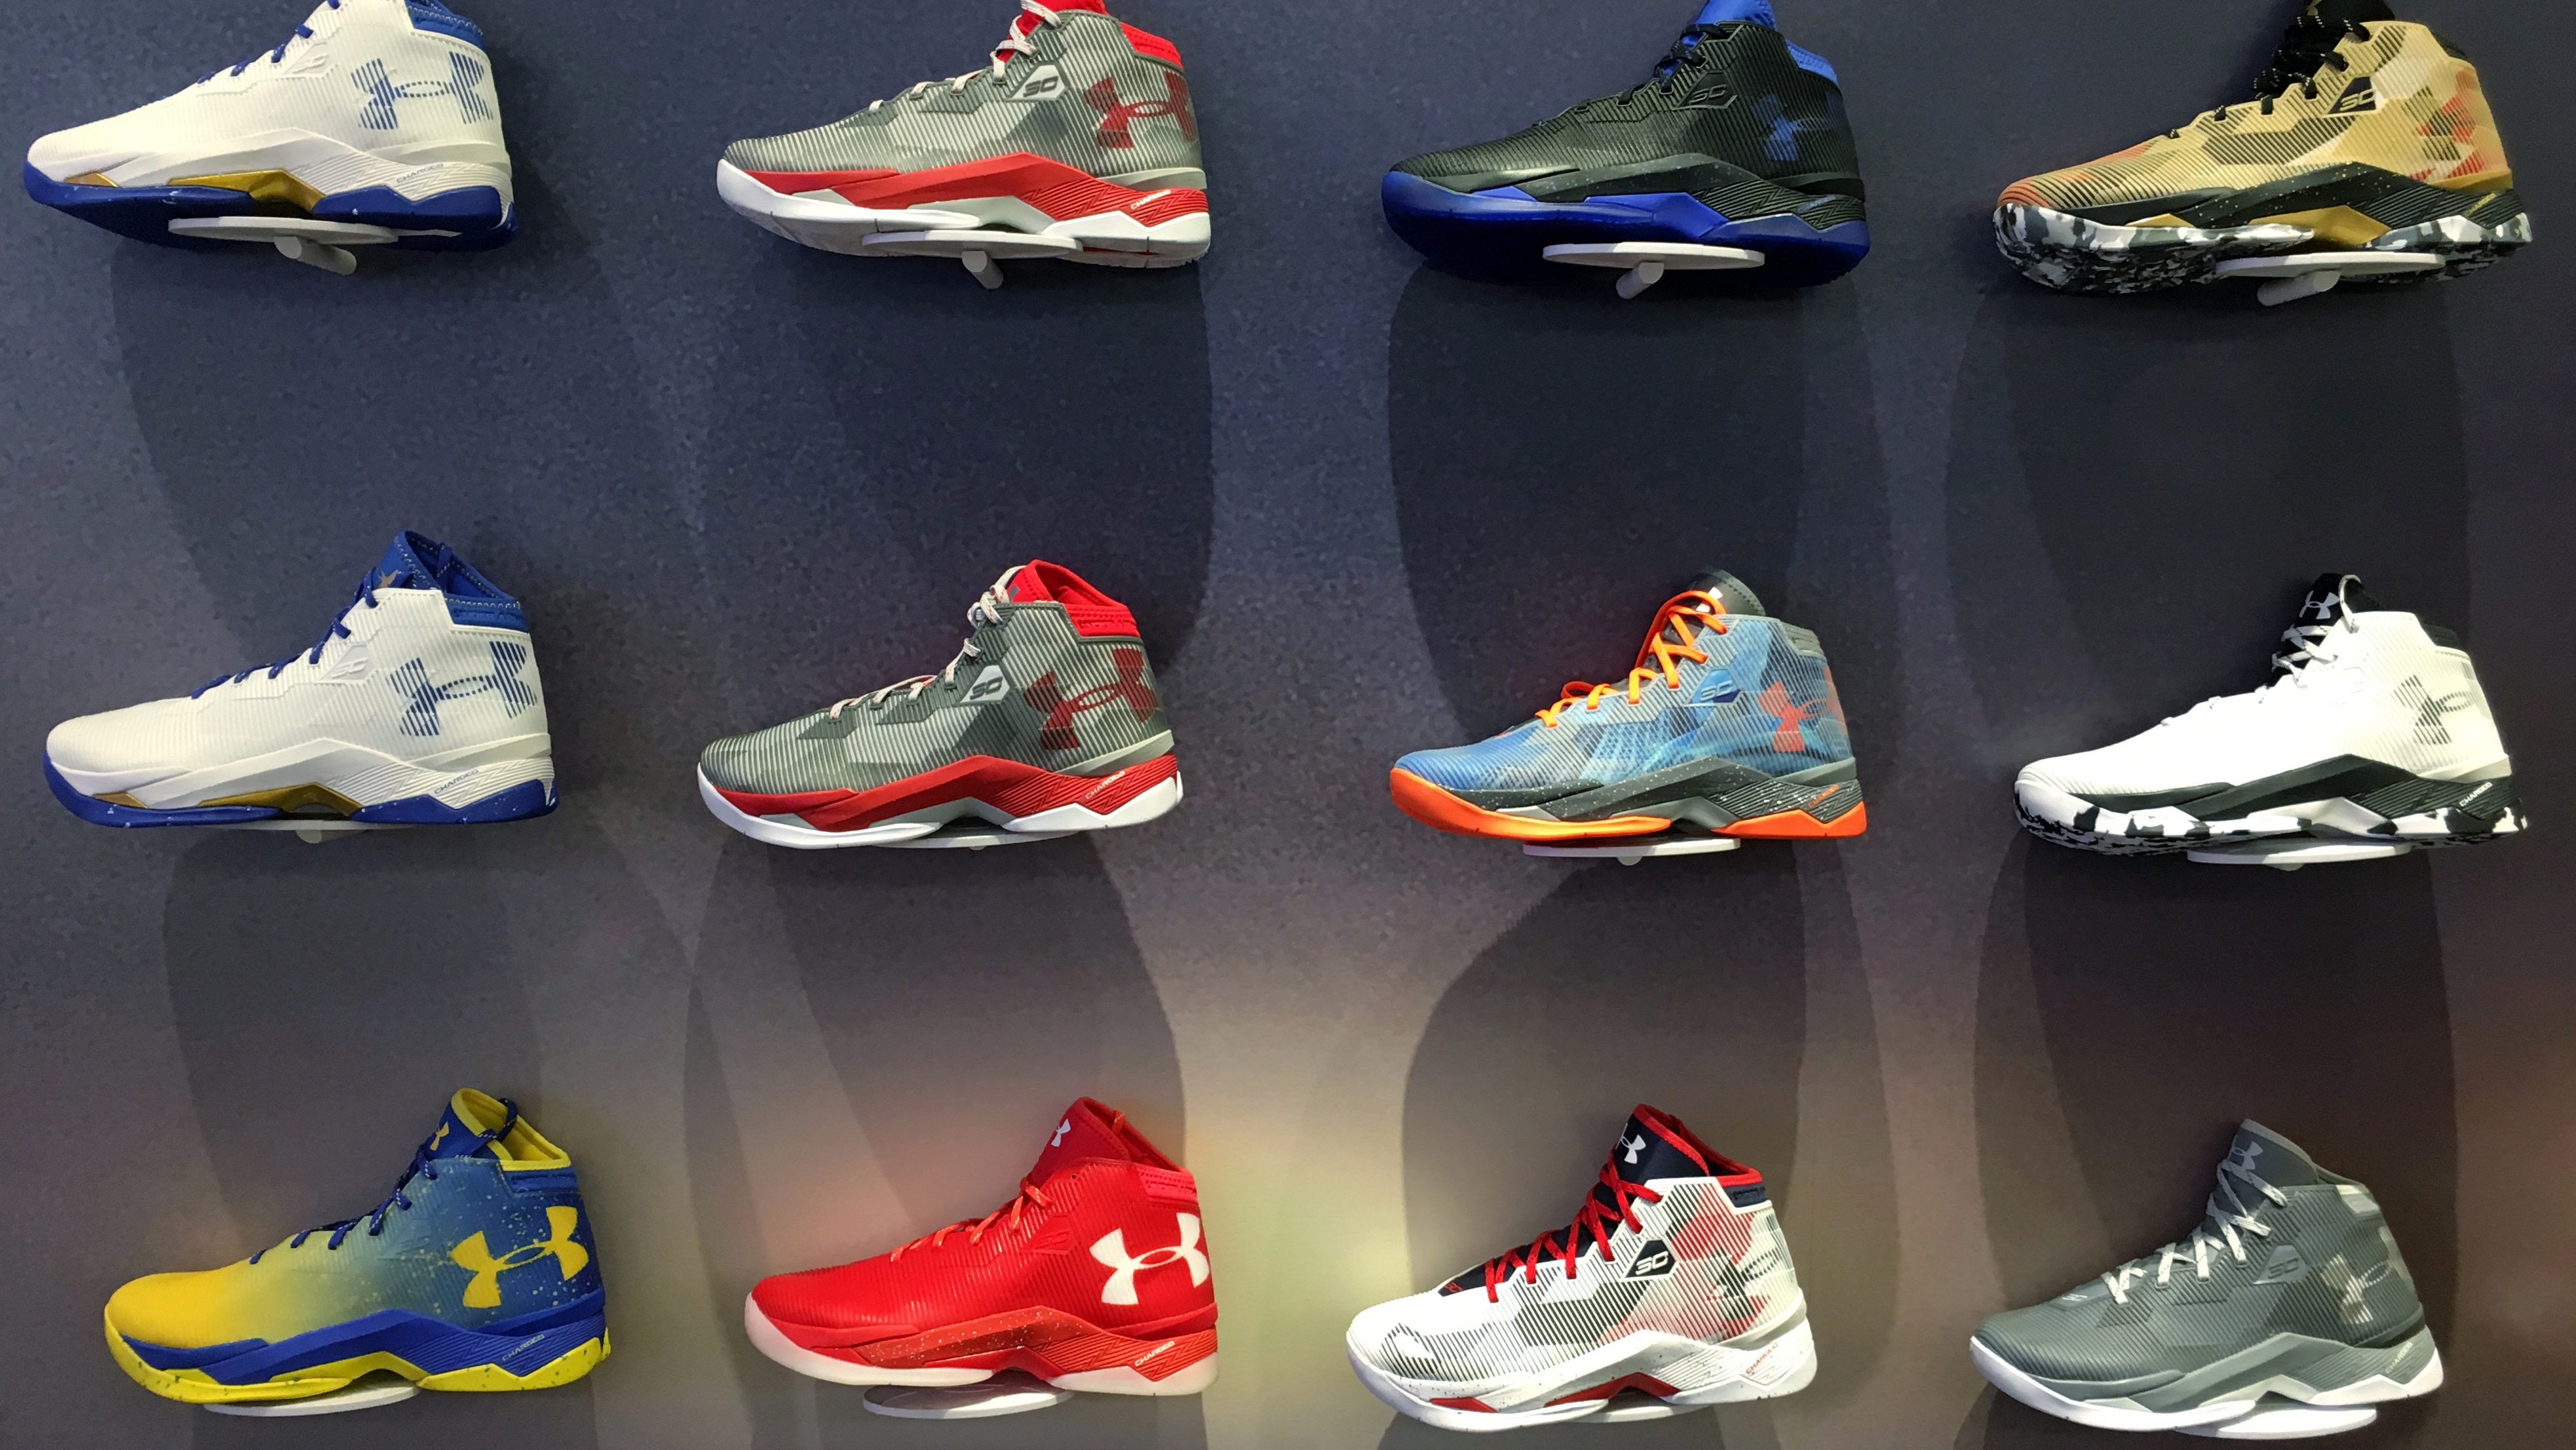 180bb64d73b1c Under Armour has tripped up in its run to become the world s next sneaker  giant